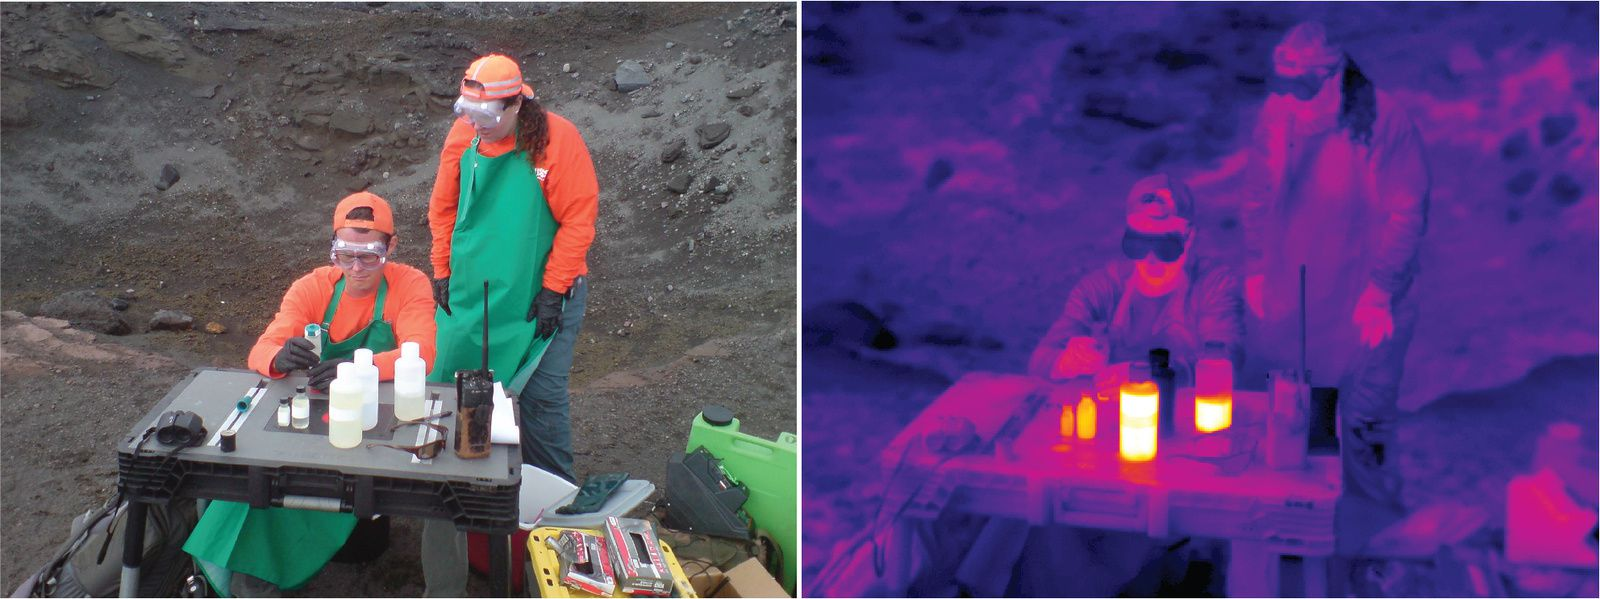 Kilauea - HVO scientists conducted preliminary water tests at the edge of the caldera a few minutes after drone collection. The thermal image shows that the water sample in the plastic bottles remained warm. - USGS images of Mr. Patrick / HVO